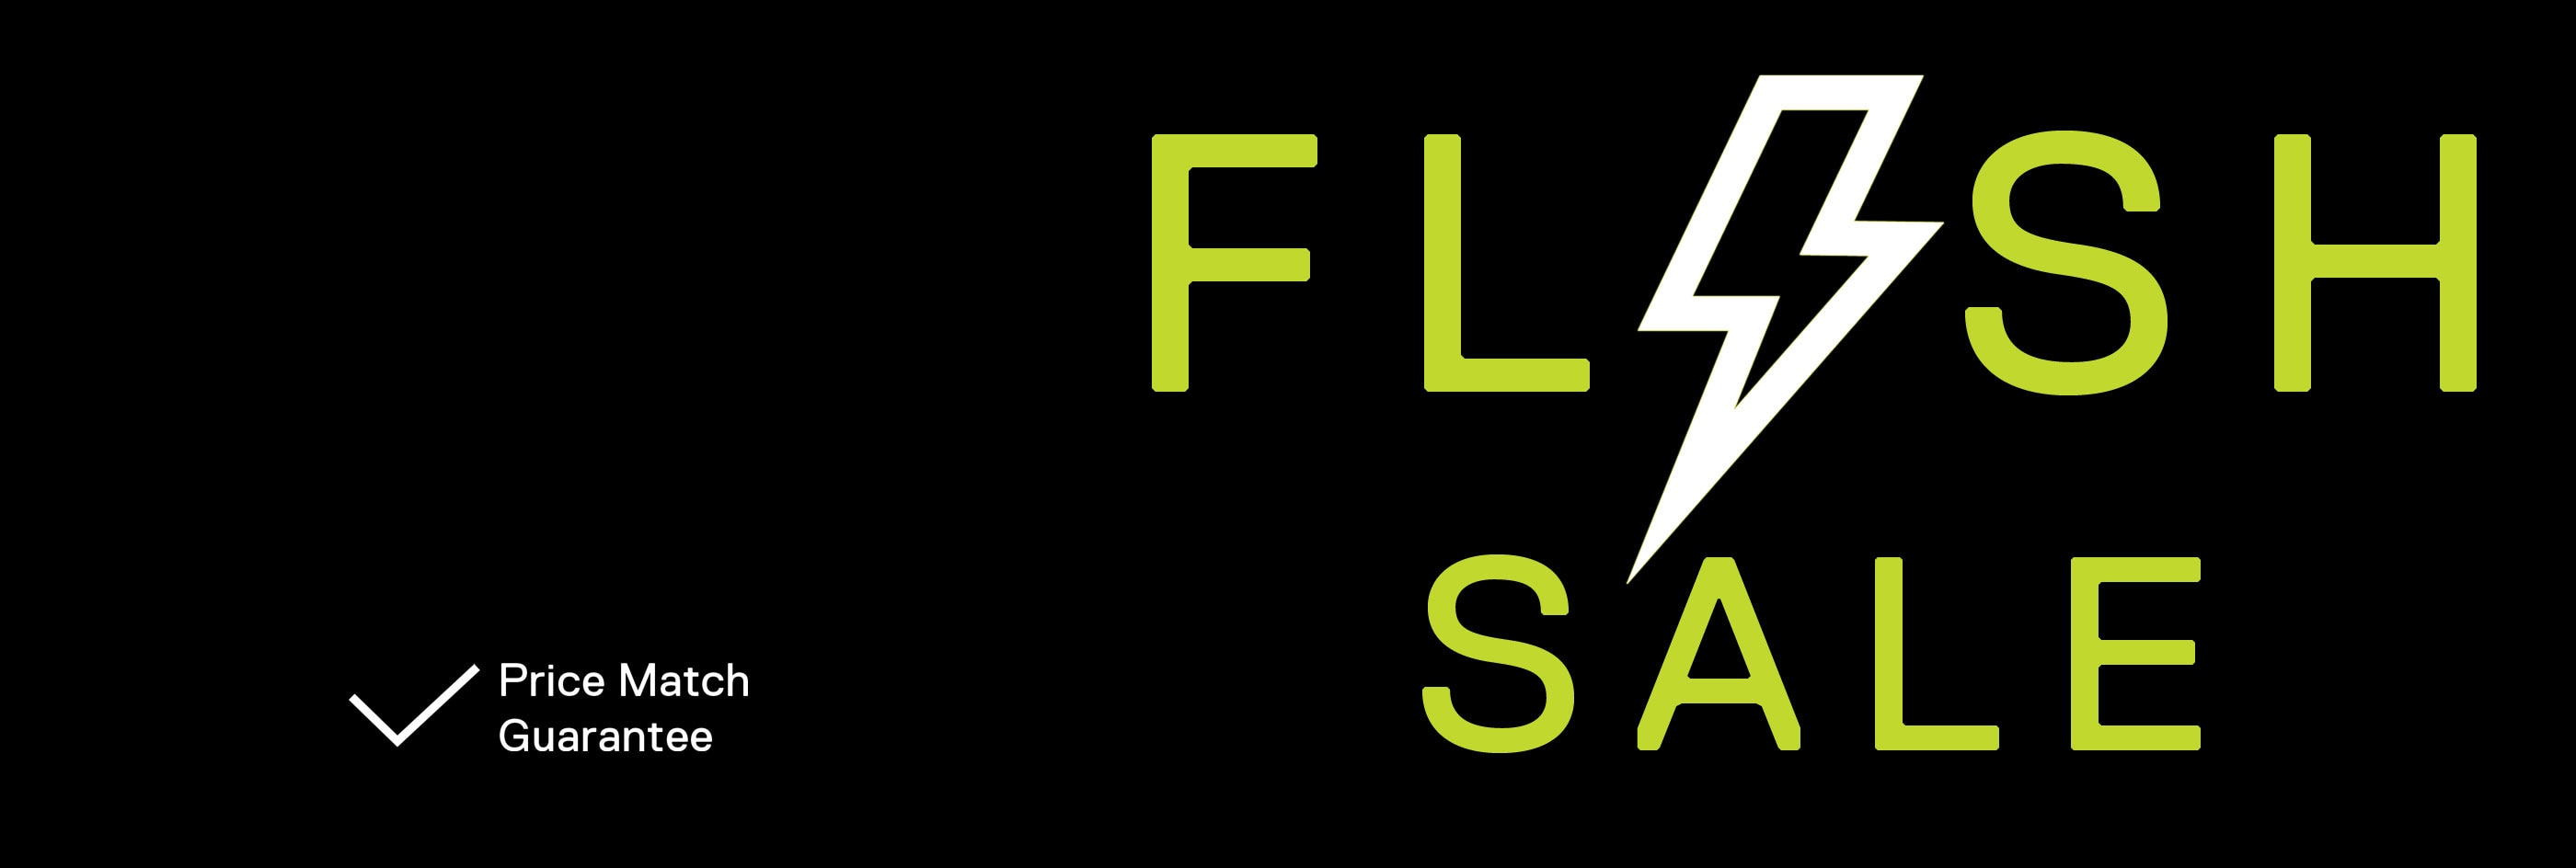 Flash Sale: Up to 40% off selected PCs.